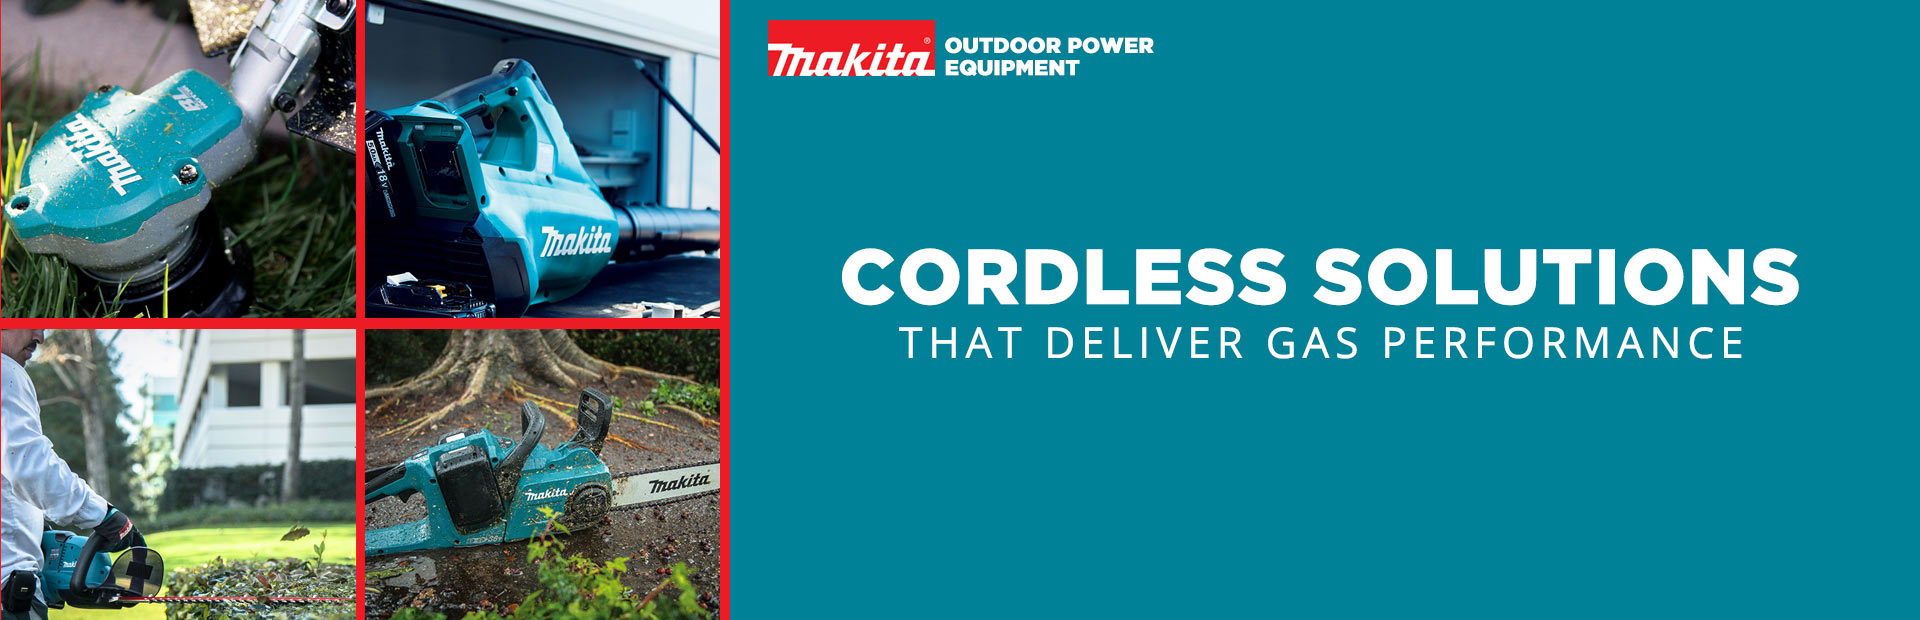 Makita Outdoor Power Equipment: Cordless Solutions That Deliver Gas Performance